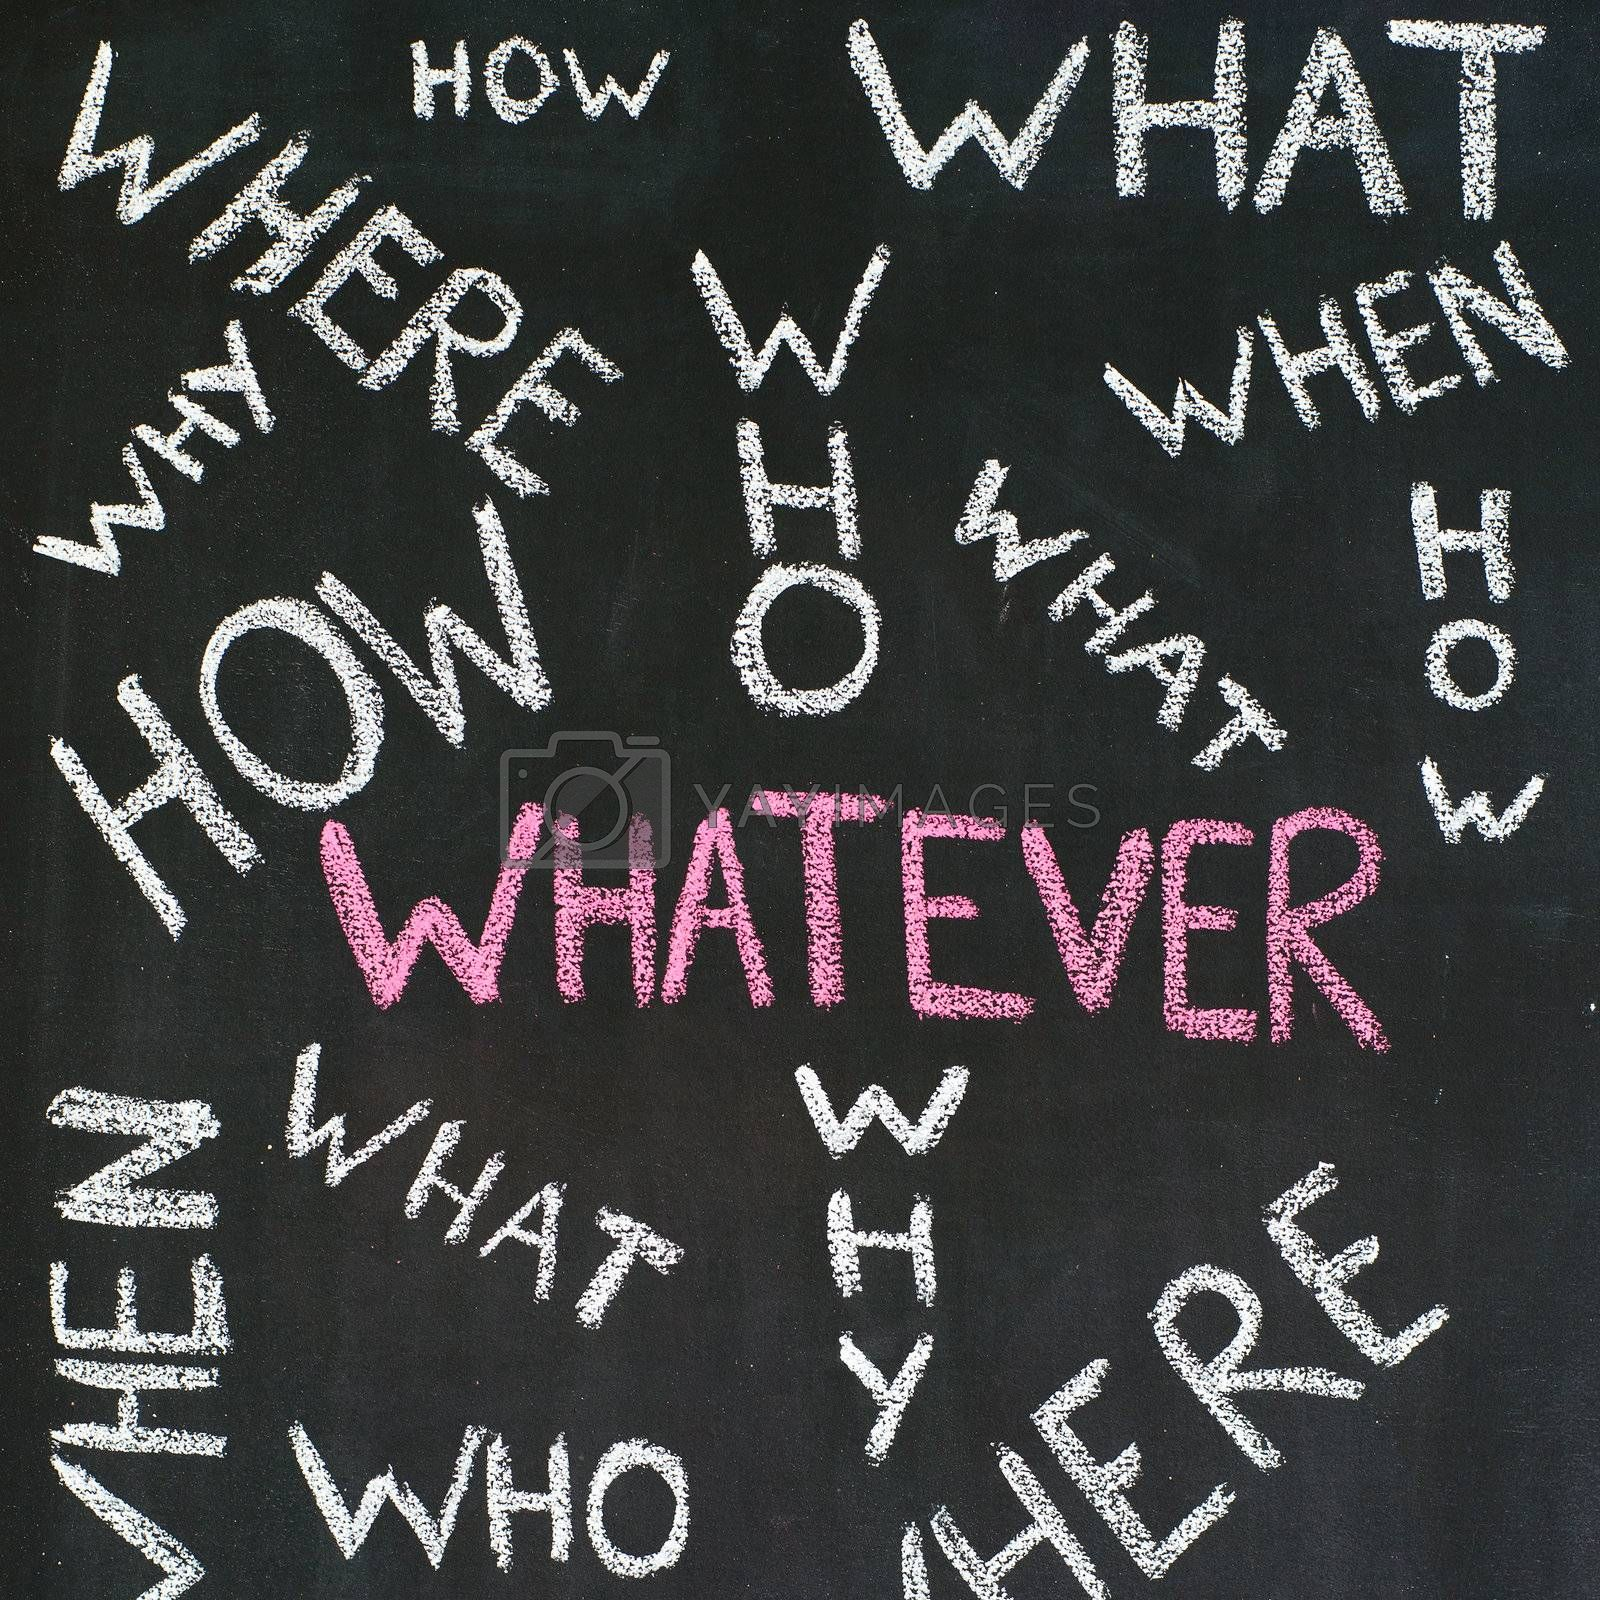 Frequently asked questions handwritten on a blackboard